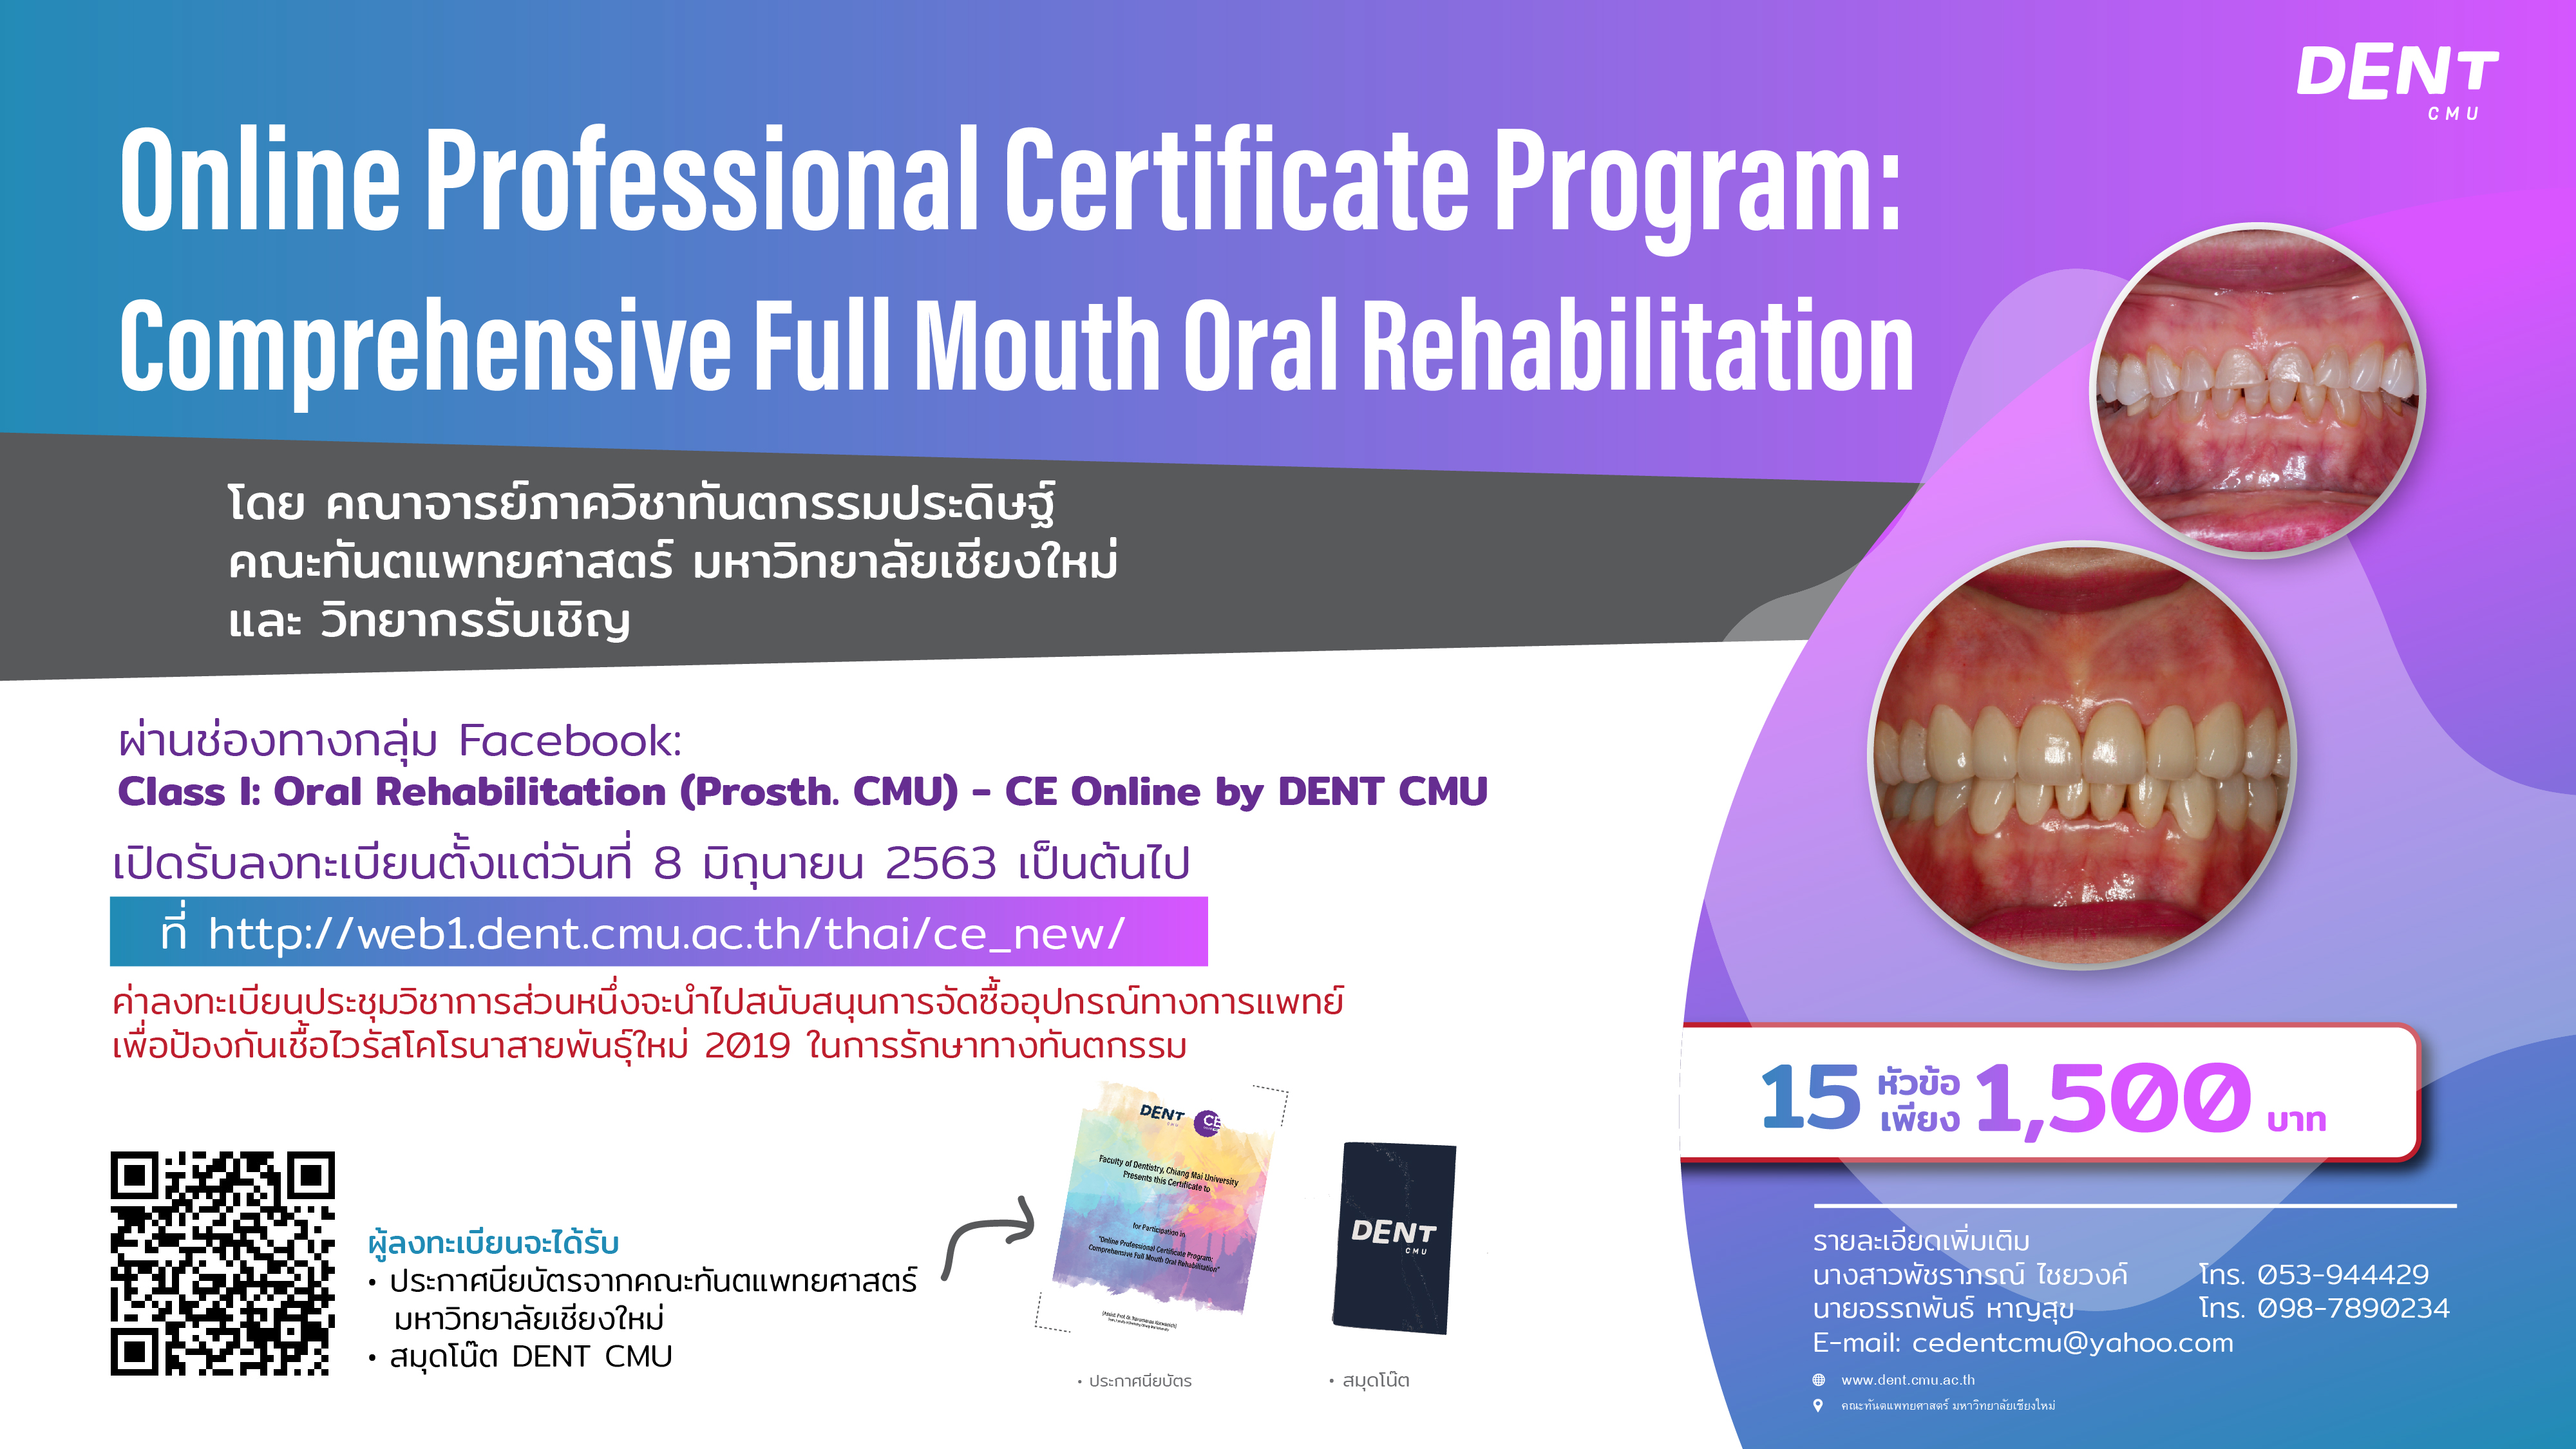 Online Professional Certificate Program: Comprehensive Full Mouth Oral Rehabilitation